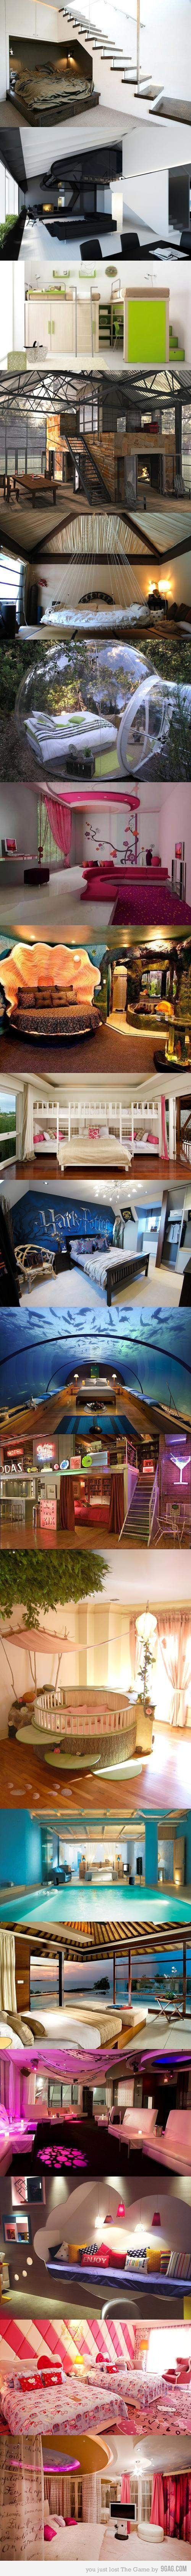 different types of rooms